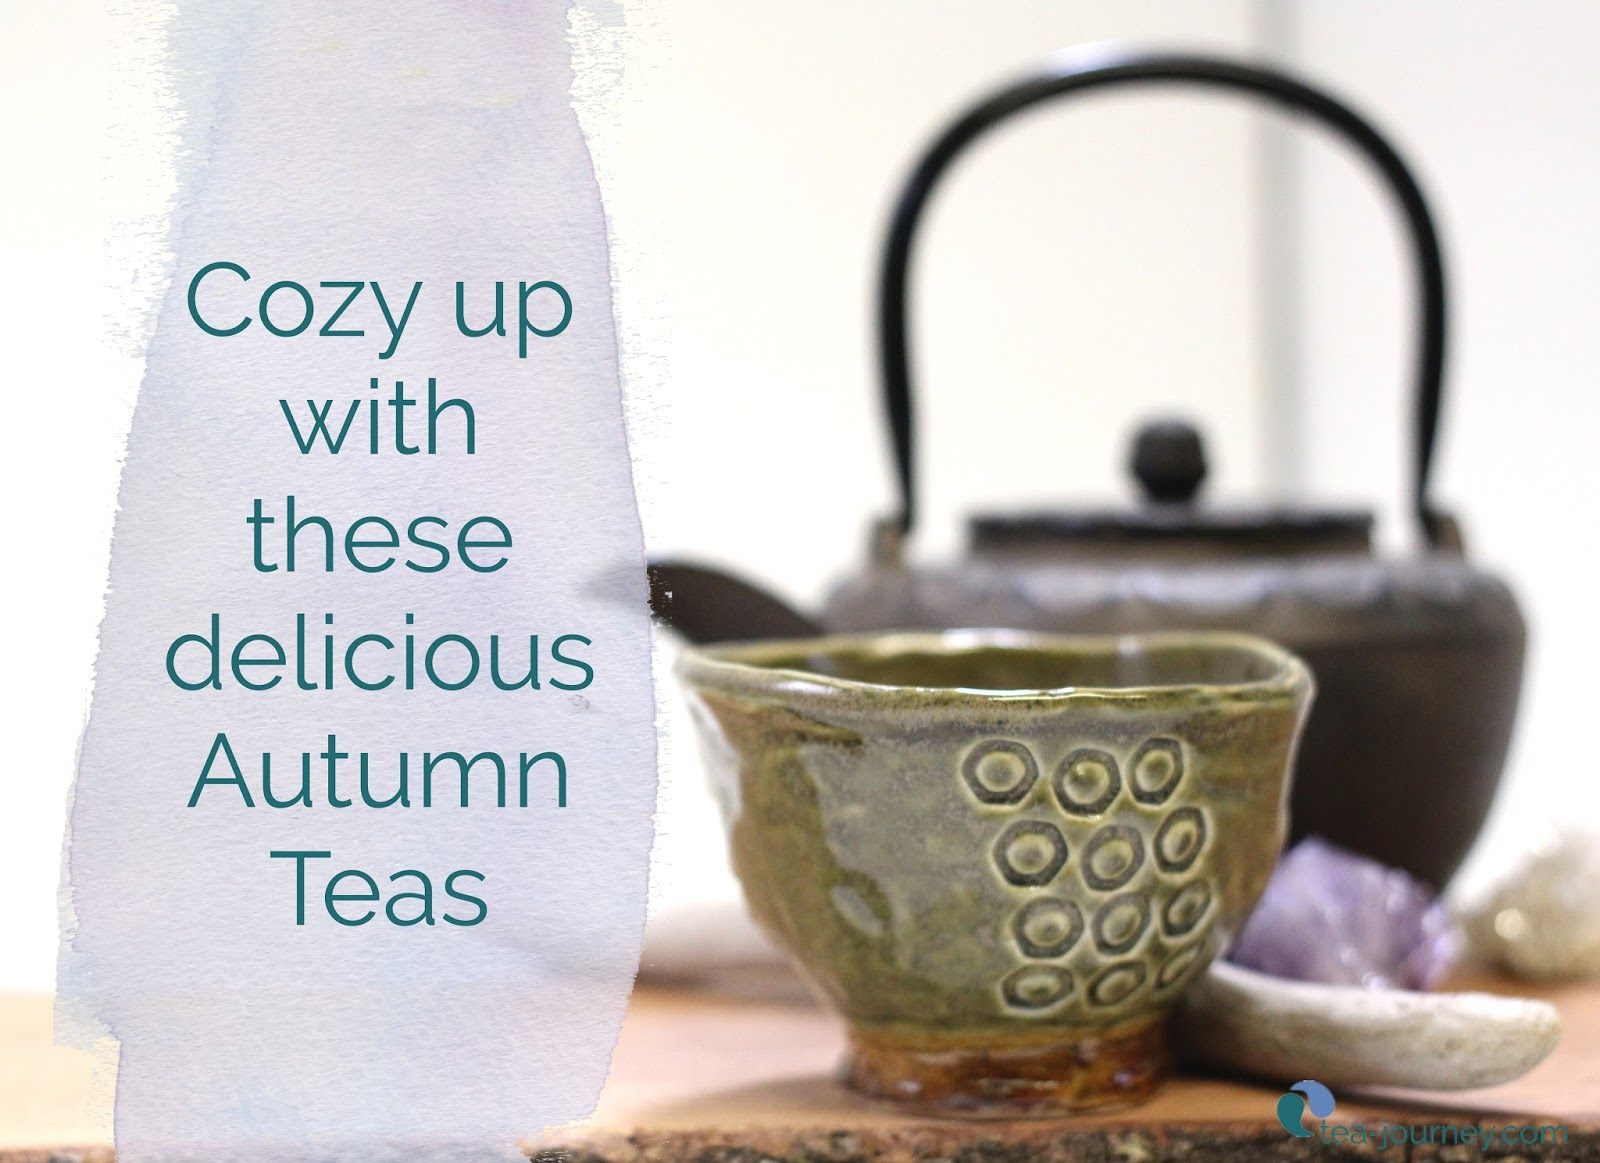 Cozy up with a warmer version of fall, with these autumn tasting teas. They pair well also with pie so we won't blame you for bringing some to Thanksgiving Dinner to share.